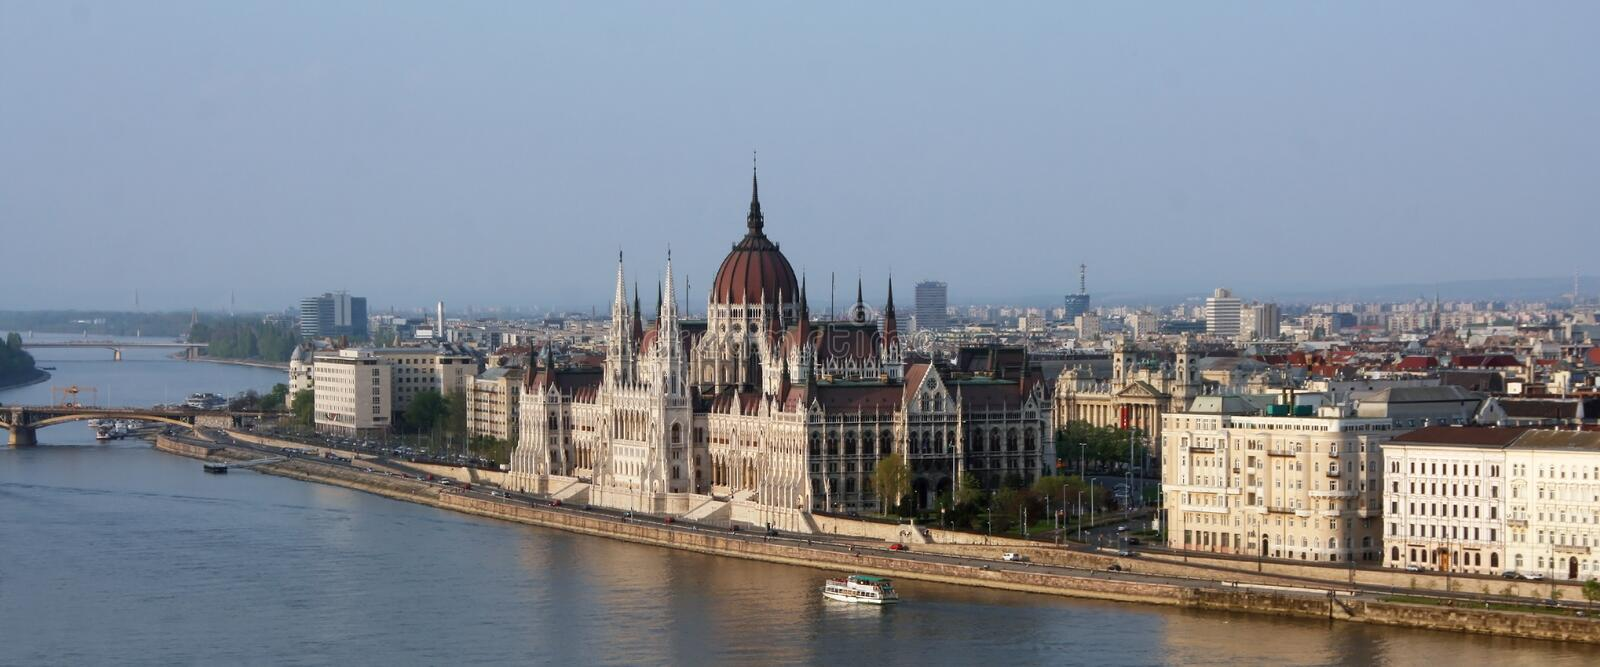 Download Budapest Parliament Stock Photography - Image: 28170152